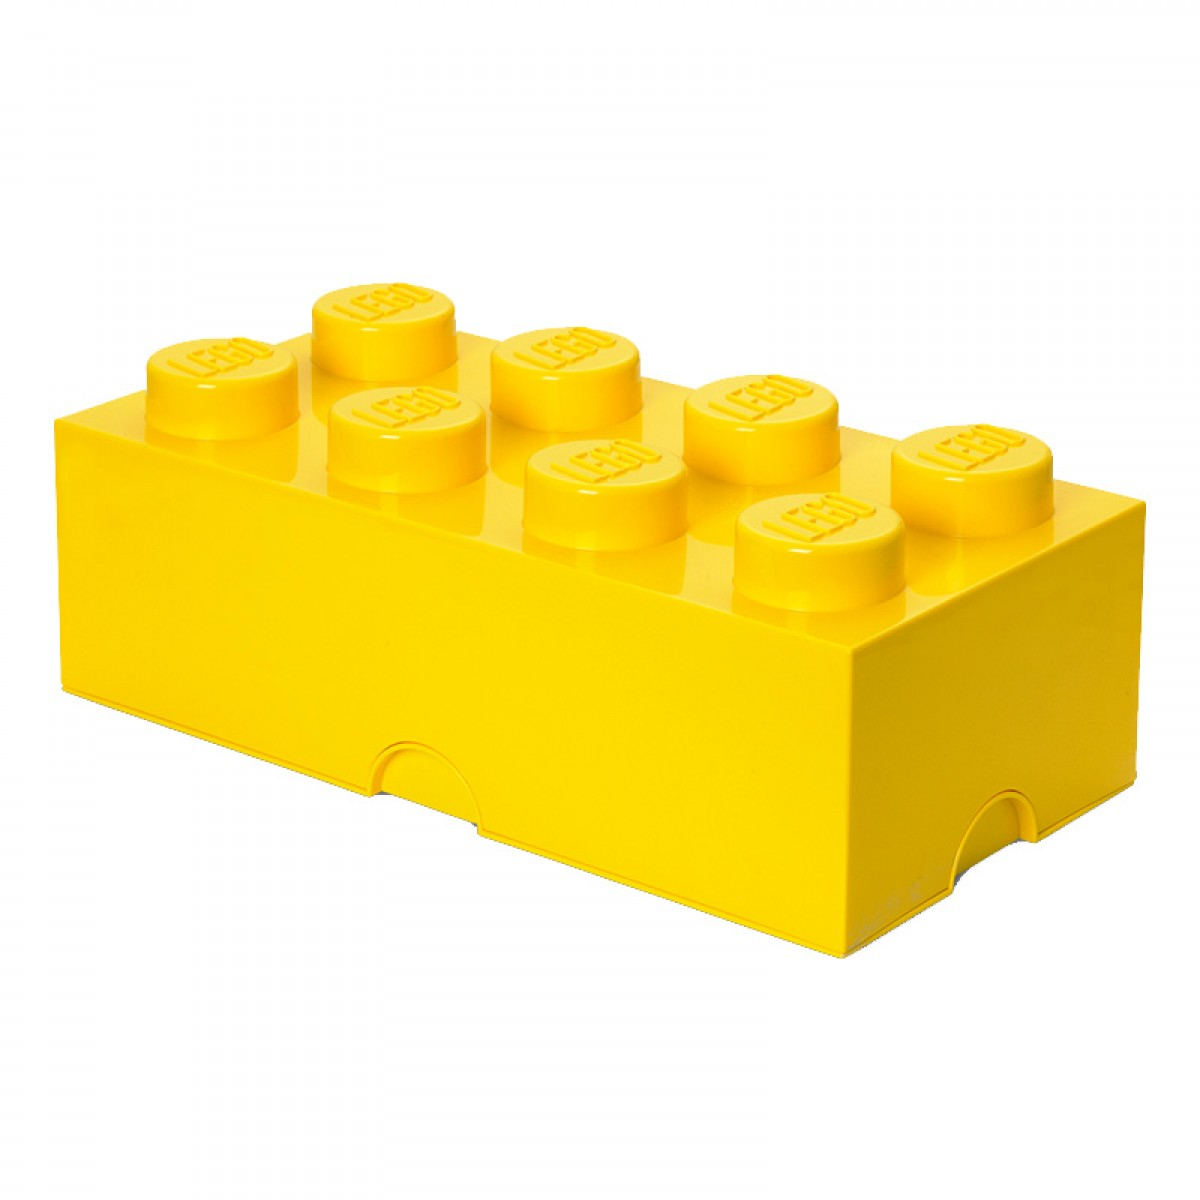 Lego Storage Brick Yellow 2 Sizes Available Stackable Box